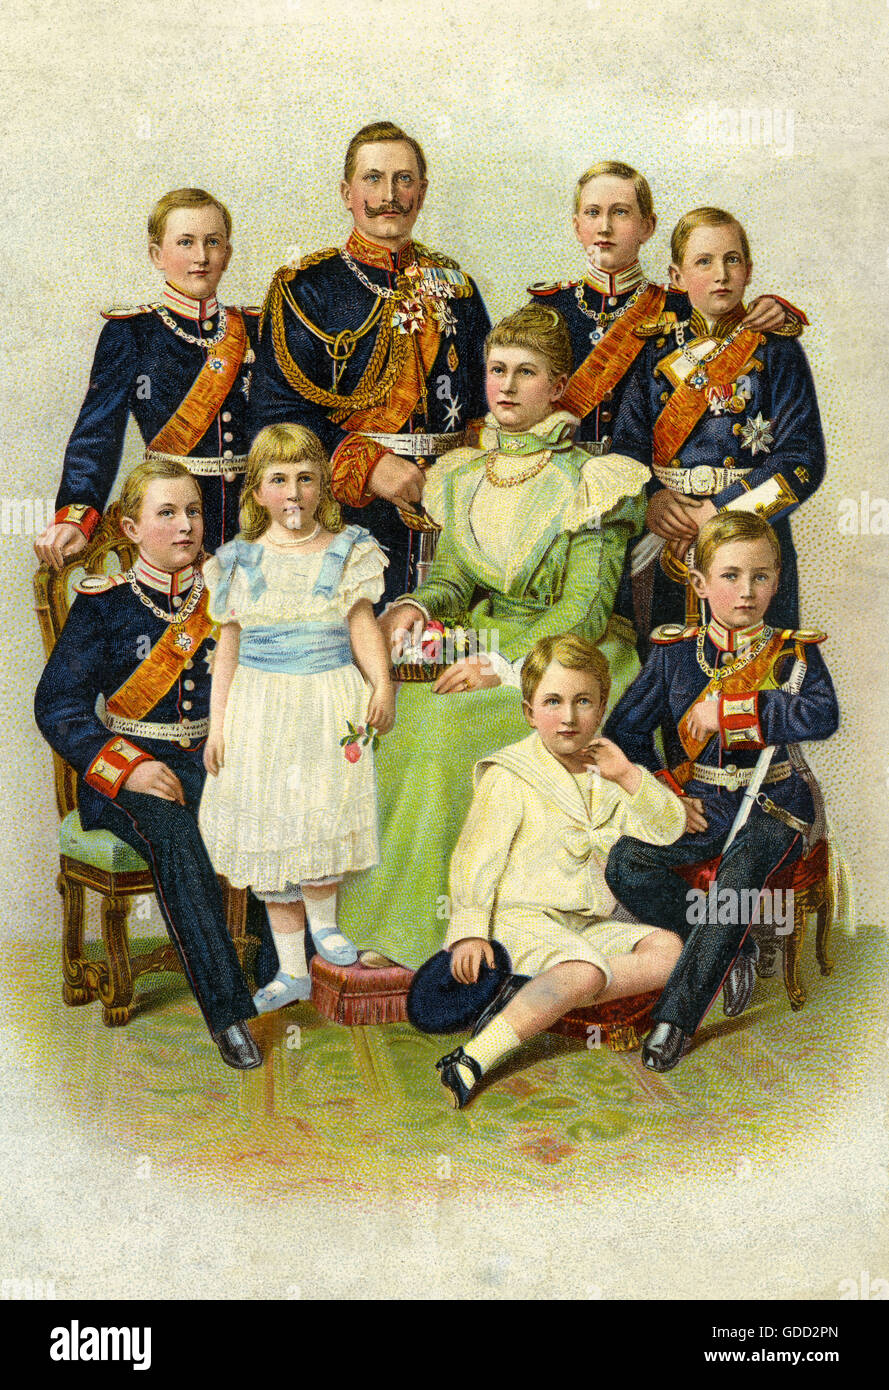 """Emperor William II (1859-1941), Empress Auguste Victoria (1858 until 1921). with her seven children, lithograph entitled: """"Our Imperial House"""", Crown Prince Frederick William (1882 bis 1951), Prince Adalbert (1884-1948), Prince Joachim (1890 bis 1920), Princess Viktoria-Luise (1892 bis 1980), Prince August William (1887-1949), Prince Eitel Frederick (1883-1942), Prince Oskar (1888 bis 1958), Berlin, Germany, 1899, Stock Photo"""